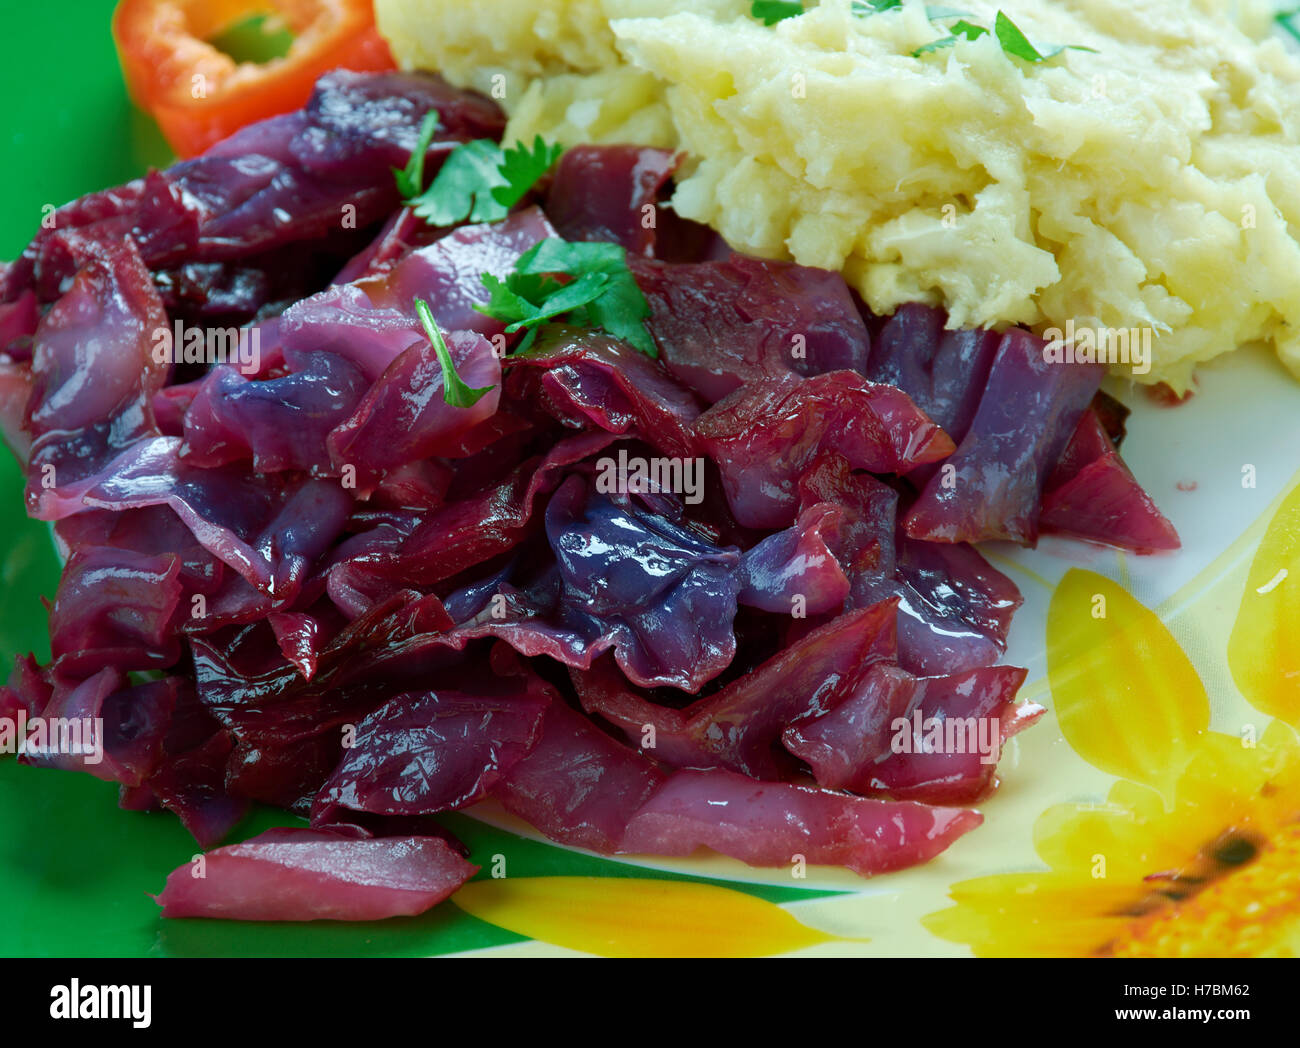 Traditional German Rotkohl- Sweet, Sour Red Cabbage - Stock Image